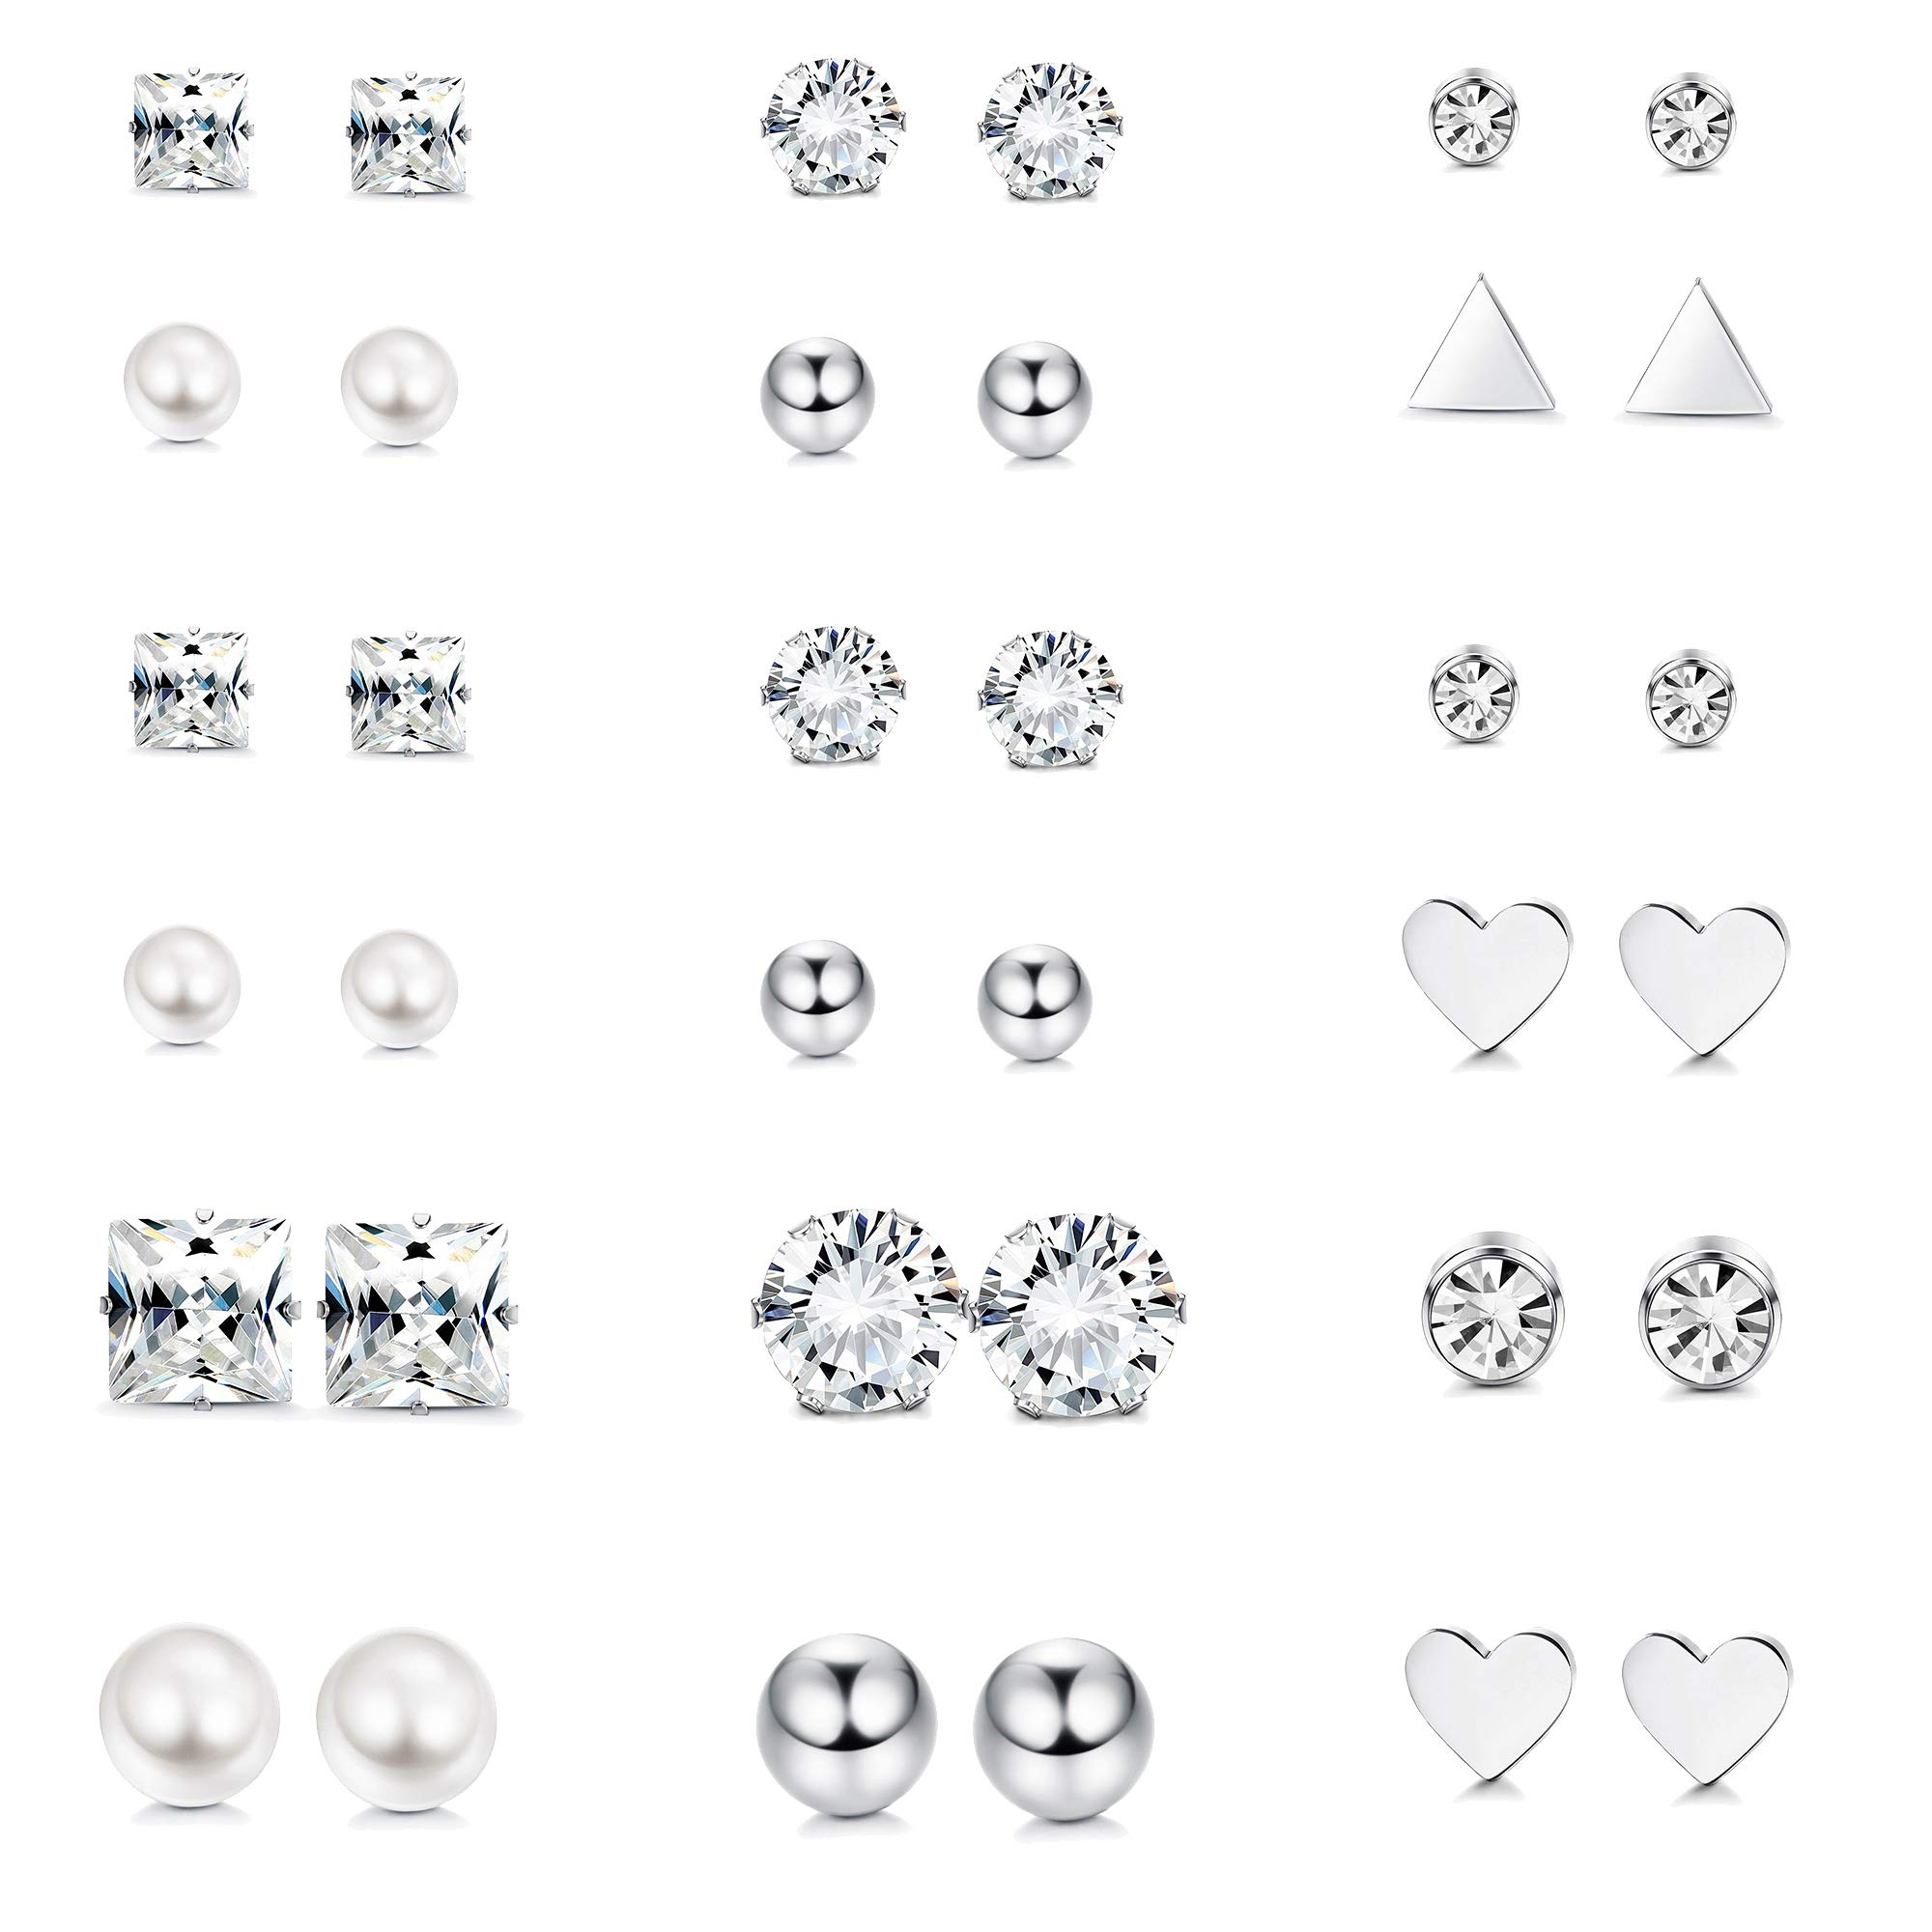 Thunaraz 12Pairs Surgical Steel Stud Earring Set Fake Pearl Earring Ball Triangle Heart CZ Earring Kit (18Pairs)